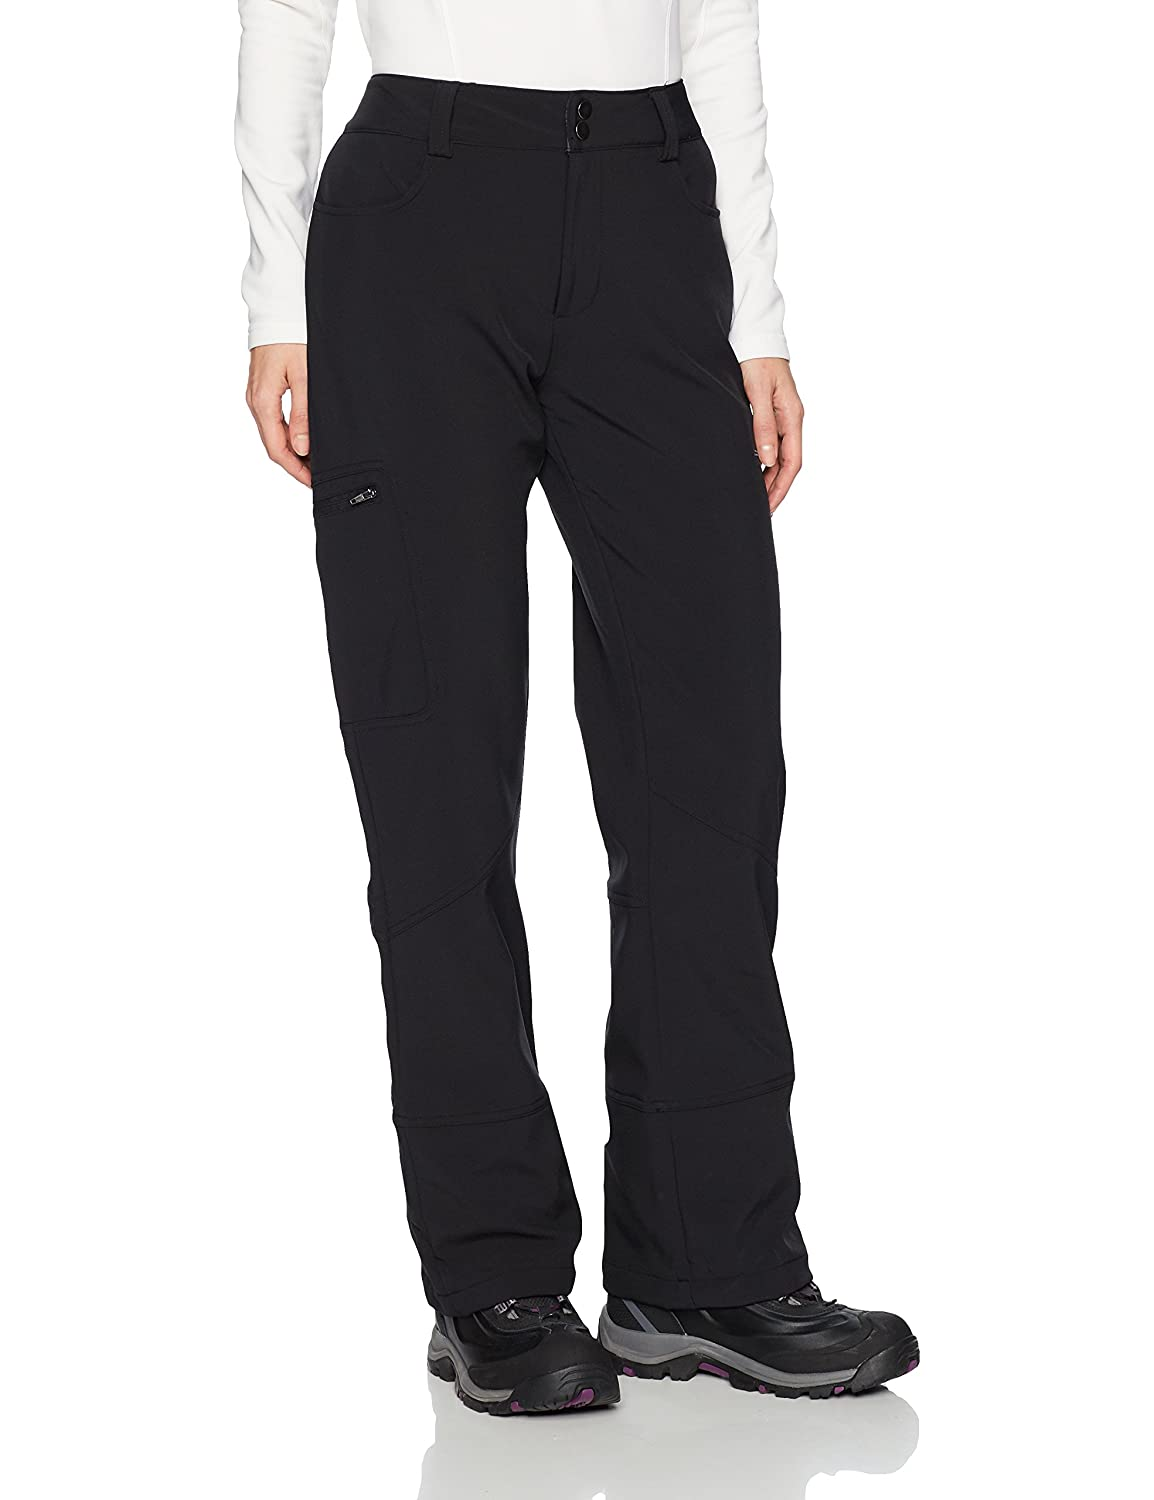 Arctix Women's Sarah Fleece Lined Softshell Ski Snow Pants